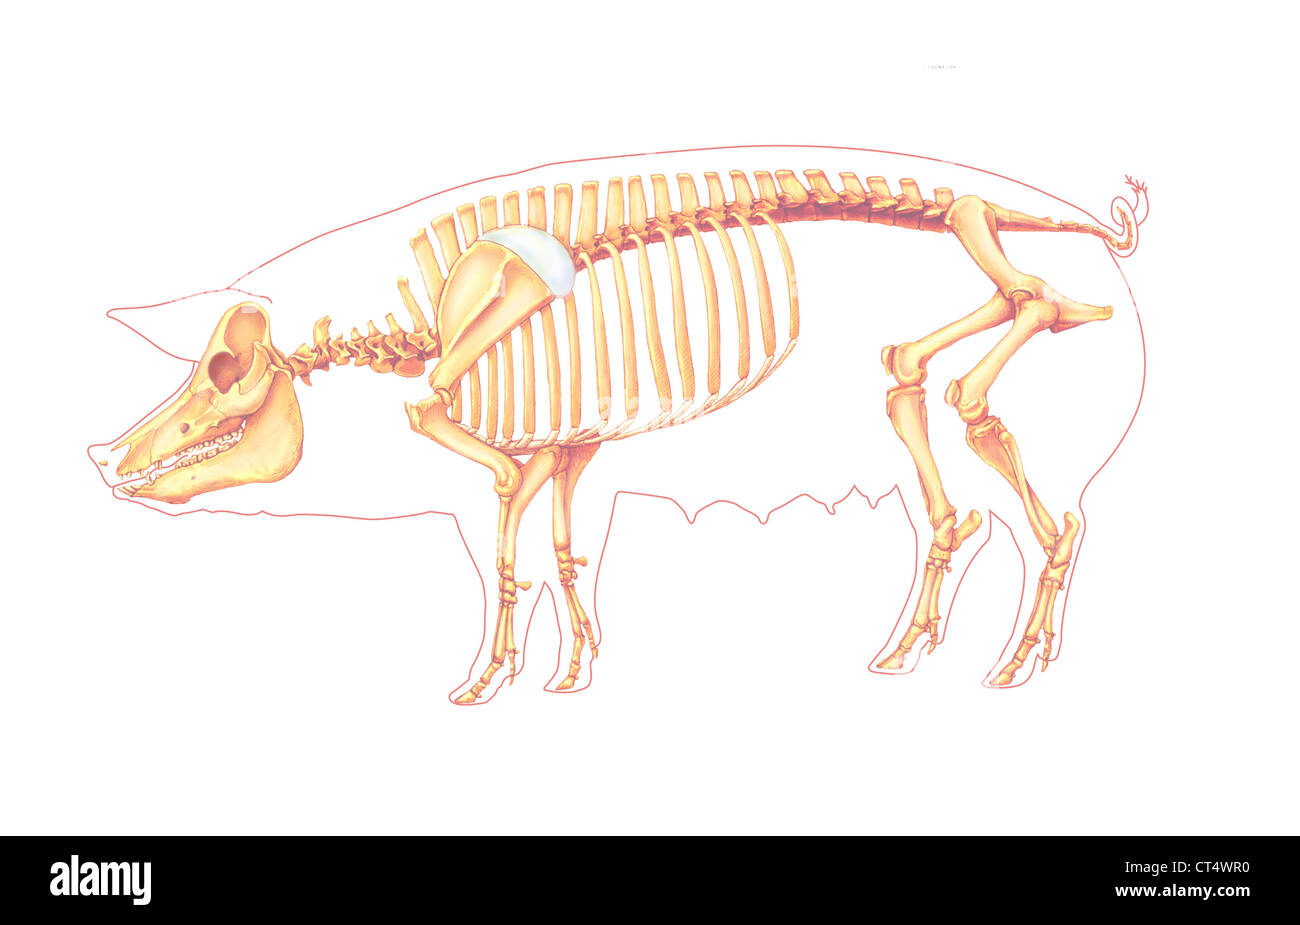 hight resolution of pig anatomy drawing stock image